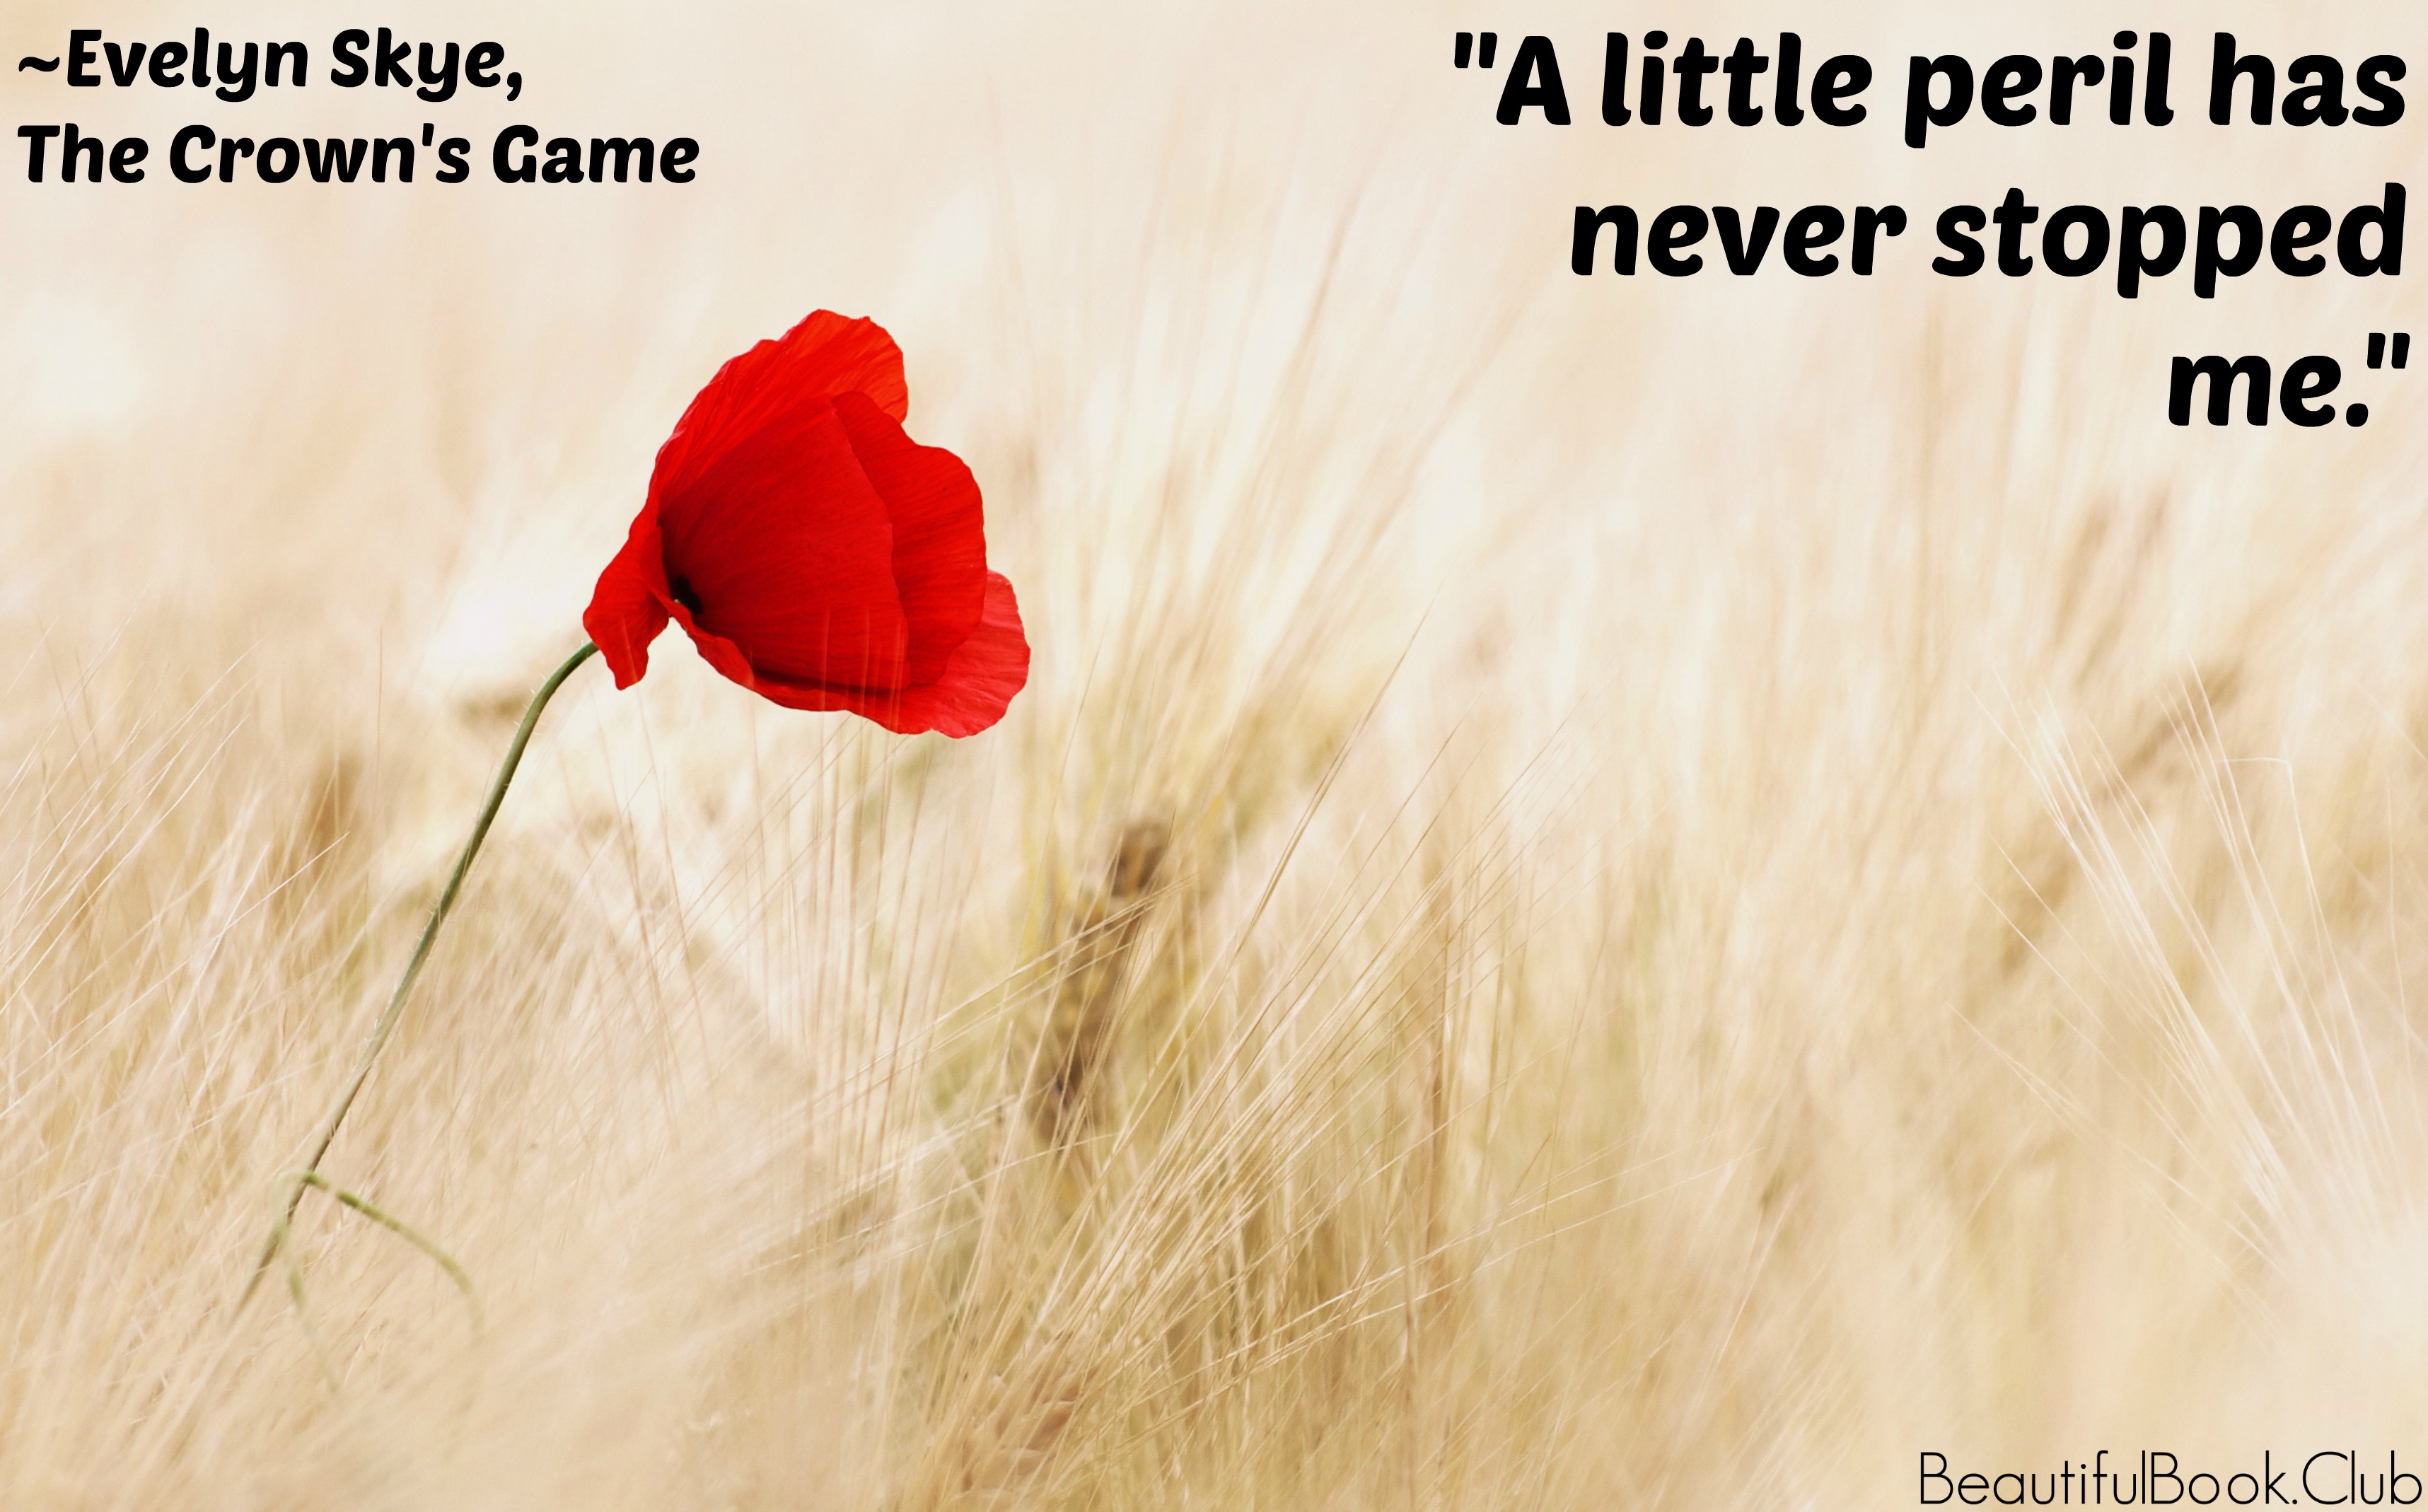 The Crown's Game by Evelyn Skye quote A little peril has never stopped me.""